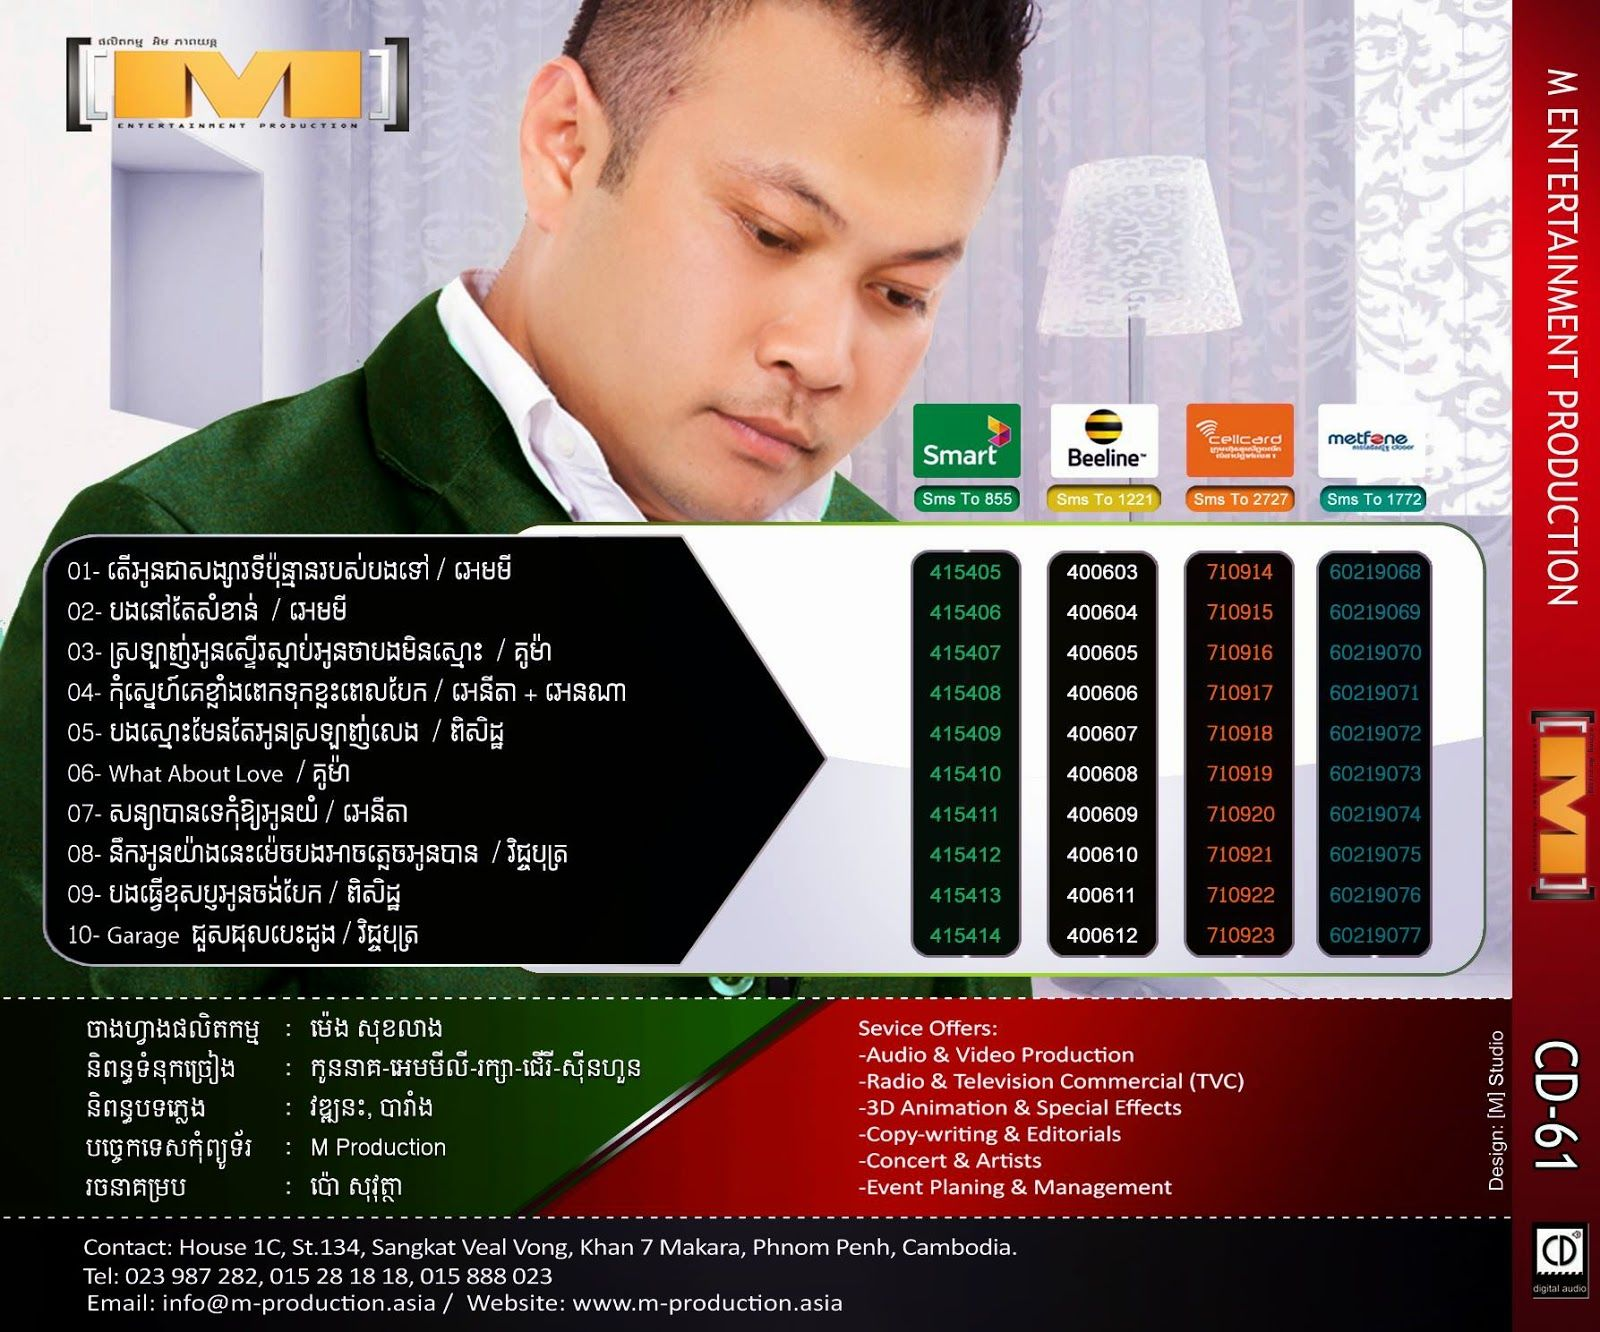 The World Of Music Cambodia All Music Production Software Music Video Movie Social News Music Videos Affiliate Marketing Entertainment